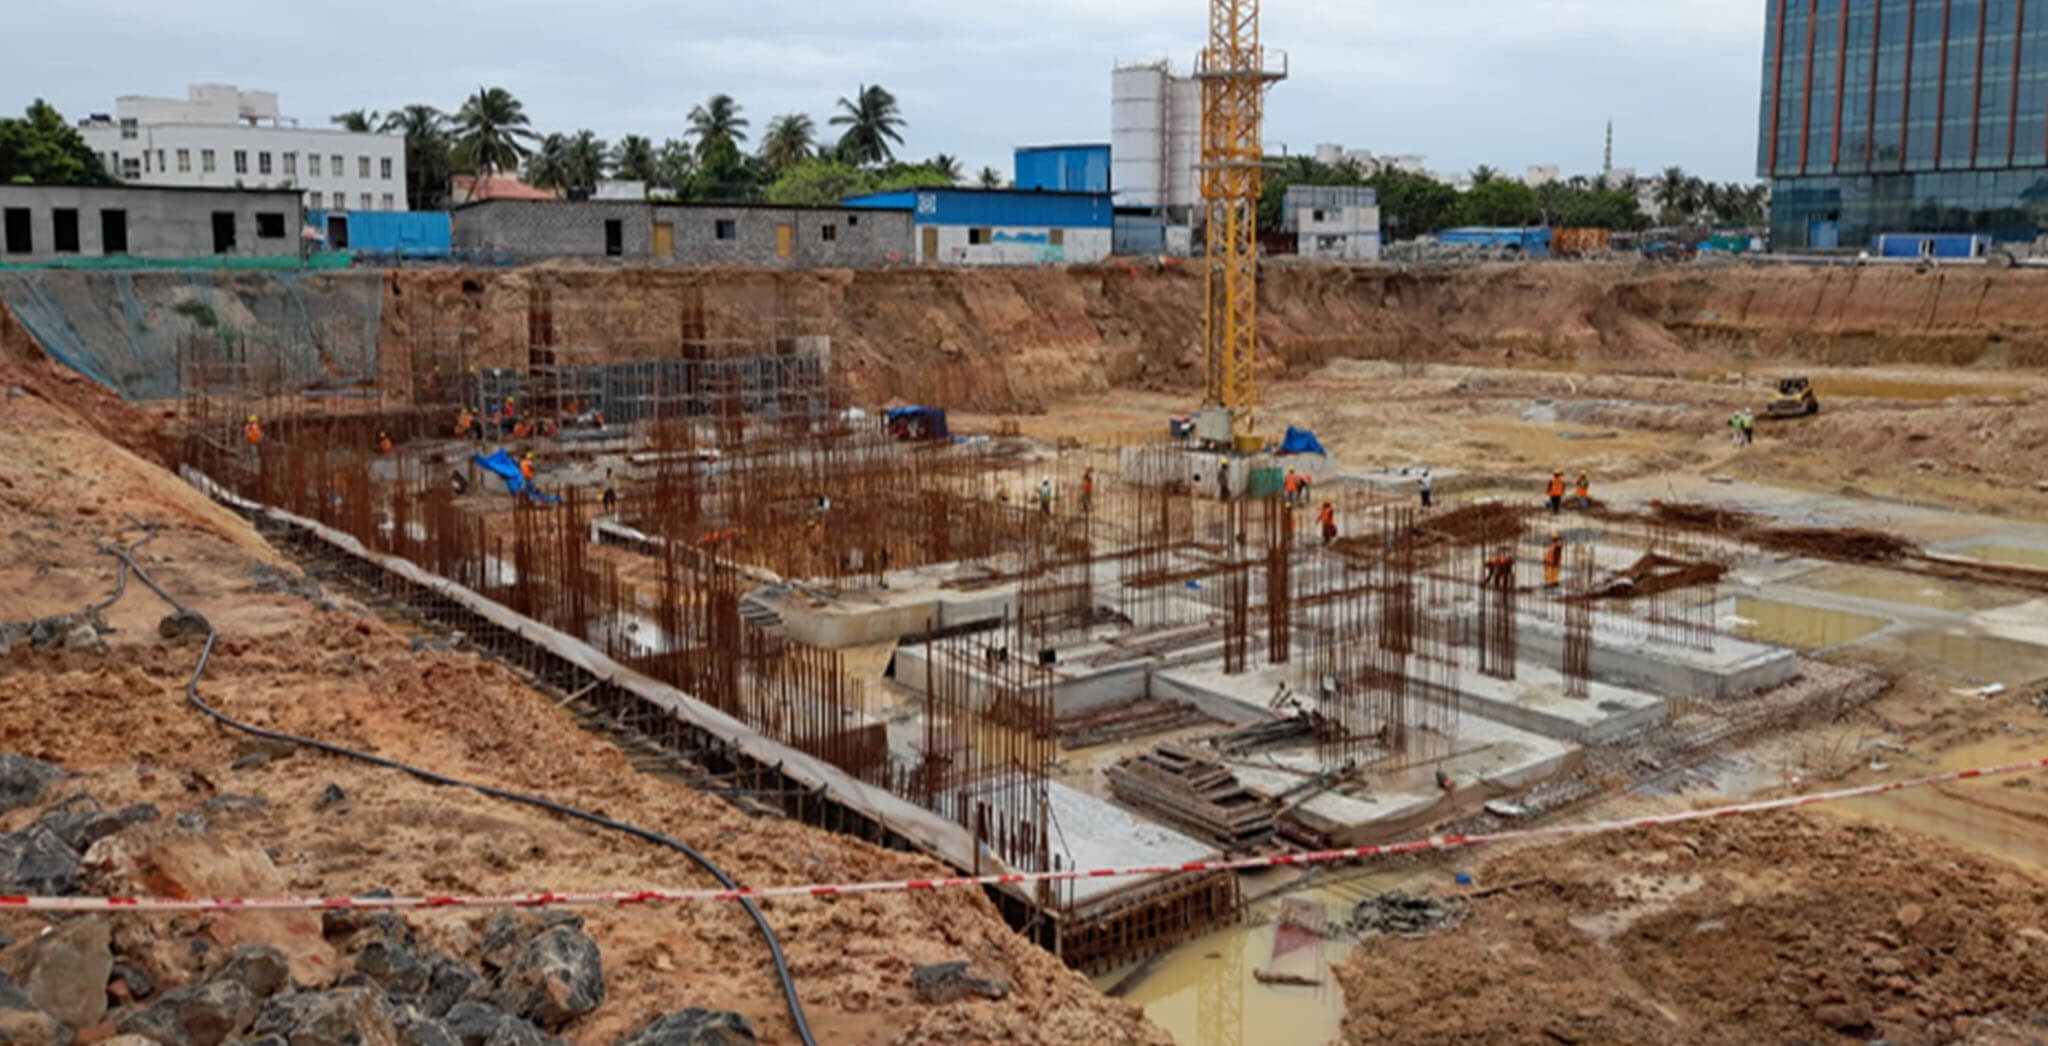 Jul 2020 - Tower A1 PCC 100% completed, raft waterproofing 100% completed, 75% raft concreting completed and balance in progress